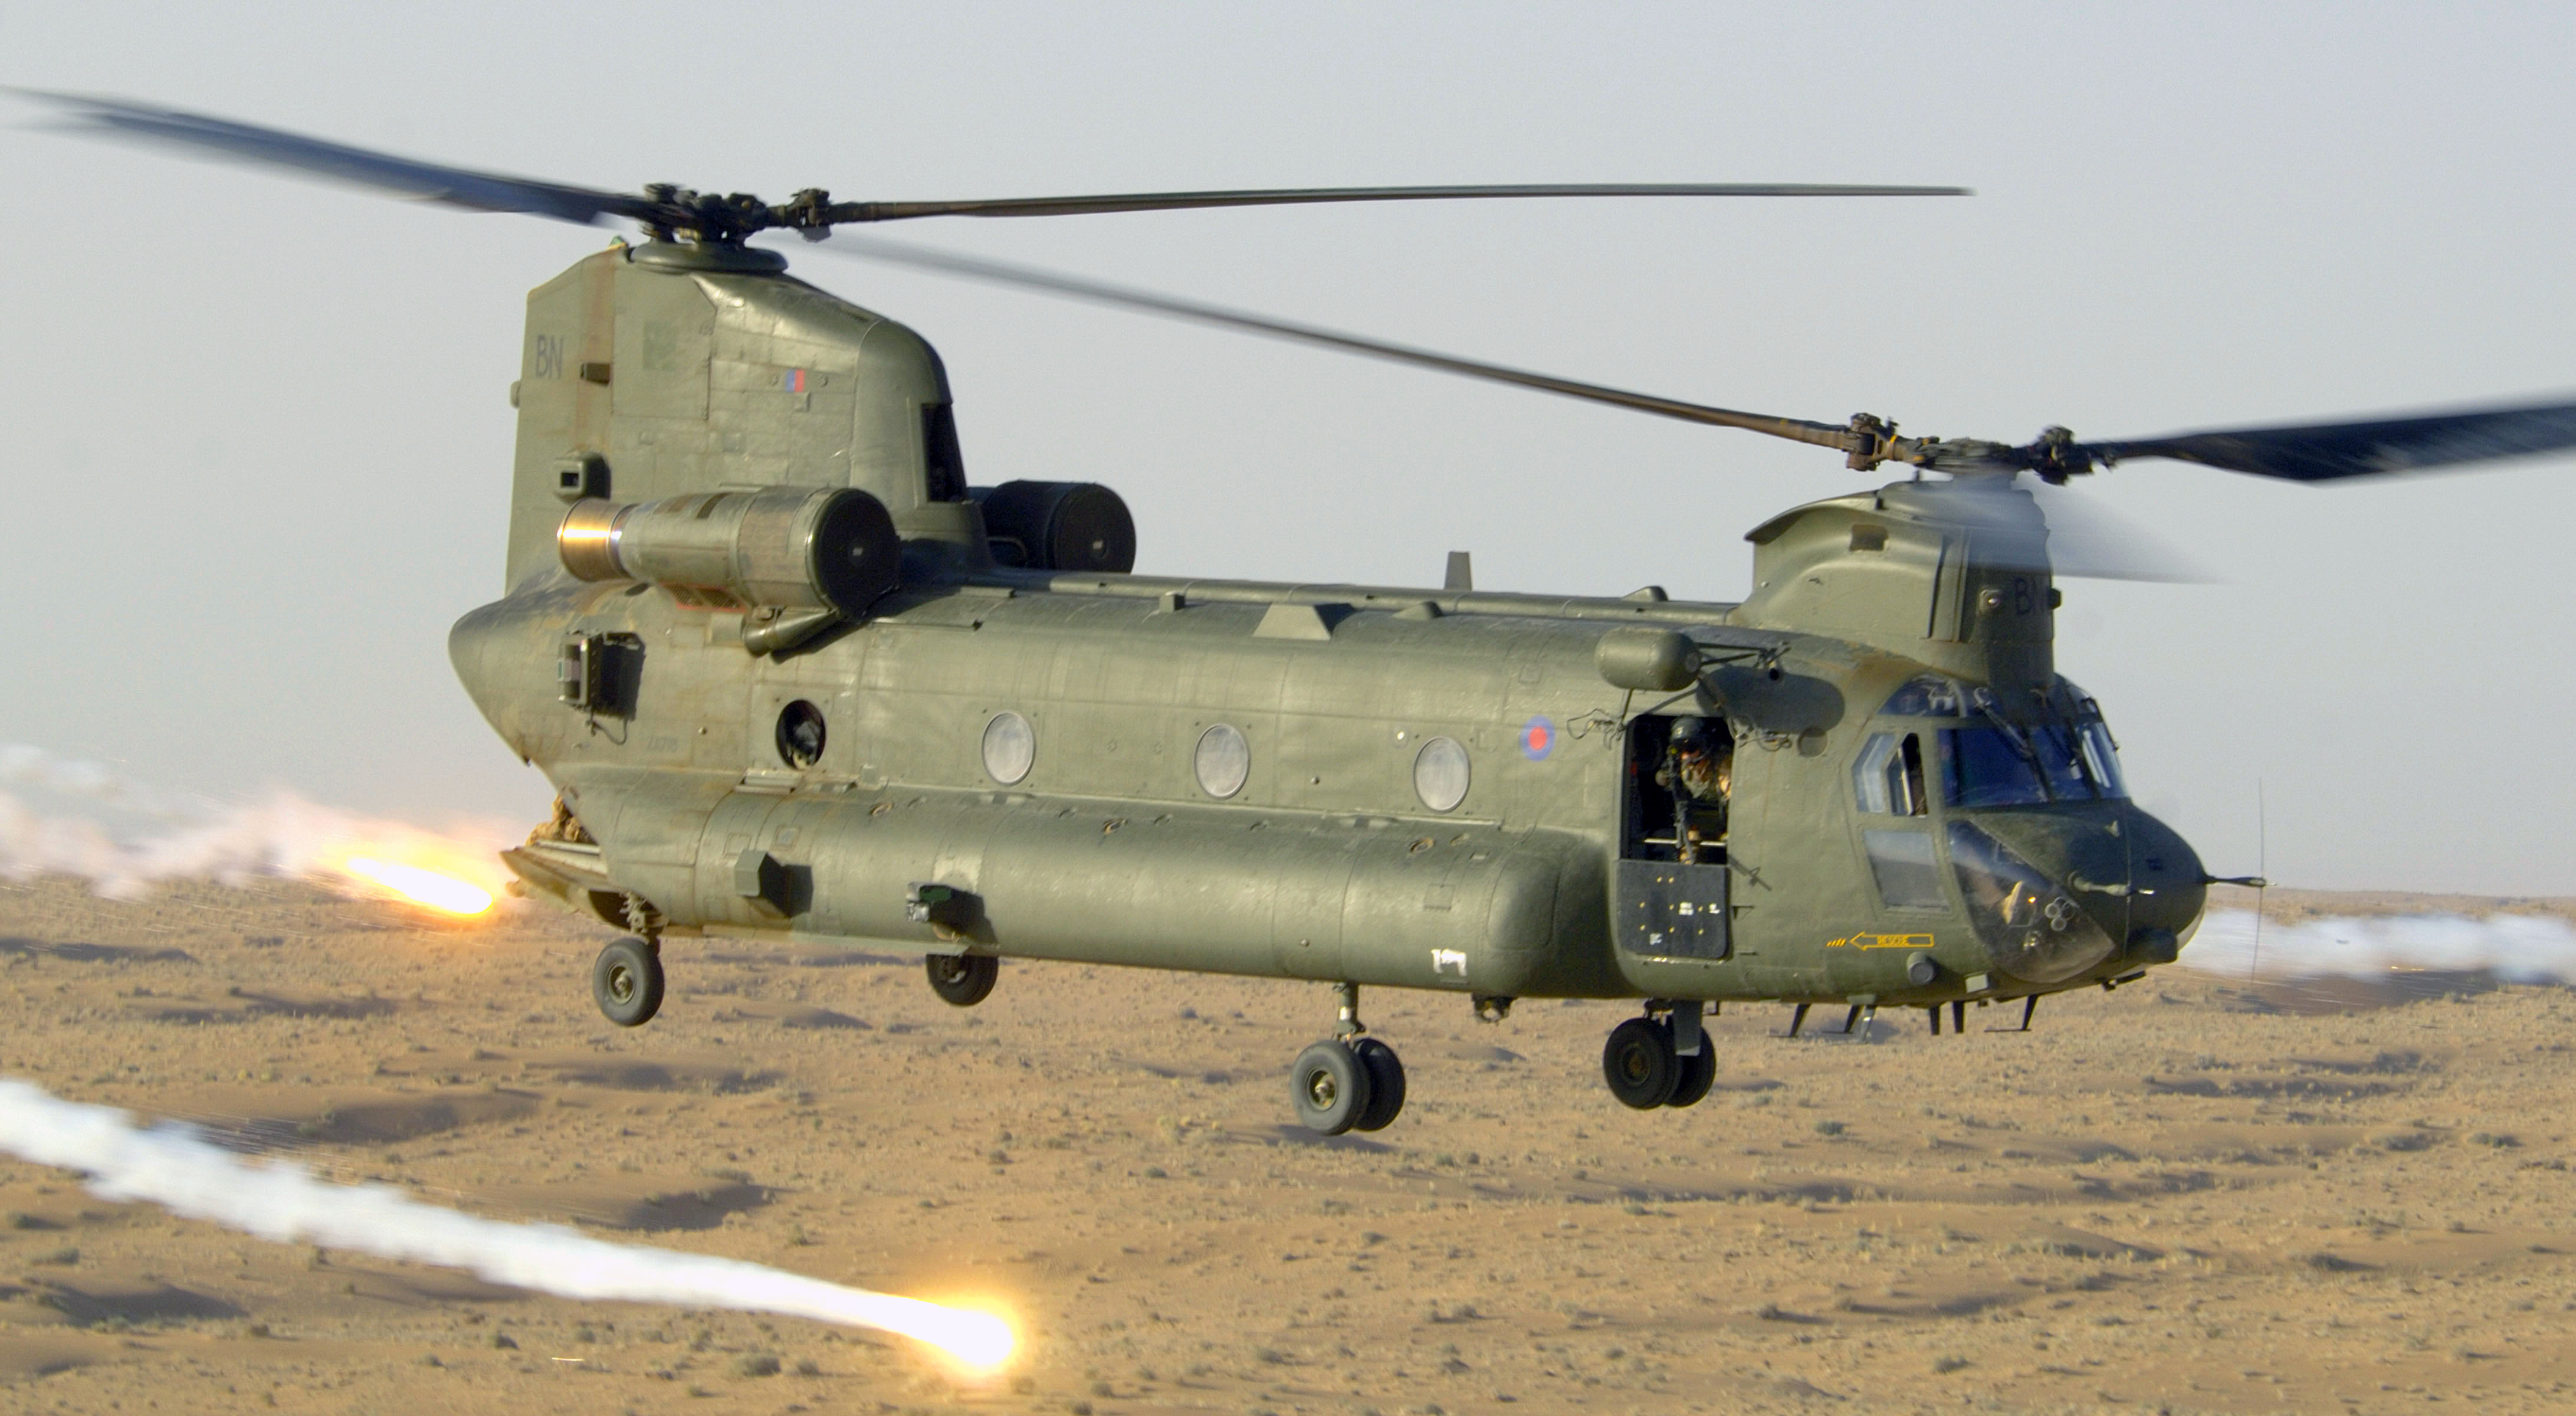 chinook helicopter vietnam with File Chinook Releases Flares Over Afghanistan Mod 45149667 on Operation Frequent Wind moreover Who Won The Vietnam War moreover Boeing CH 47 Chinook moreover History Unlimiteds moreover Ch 47d Chinook.